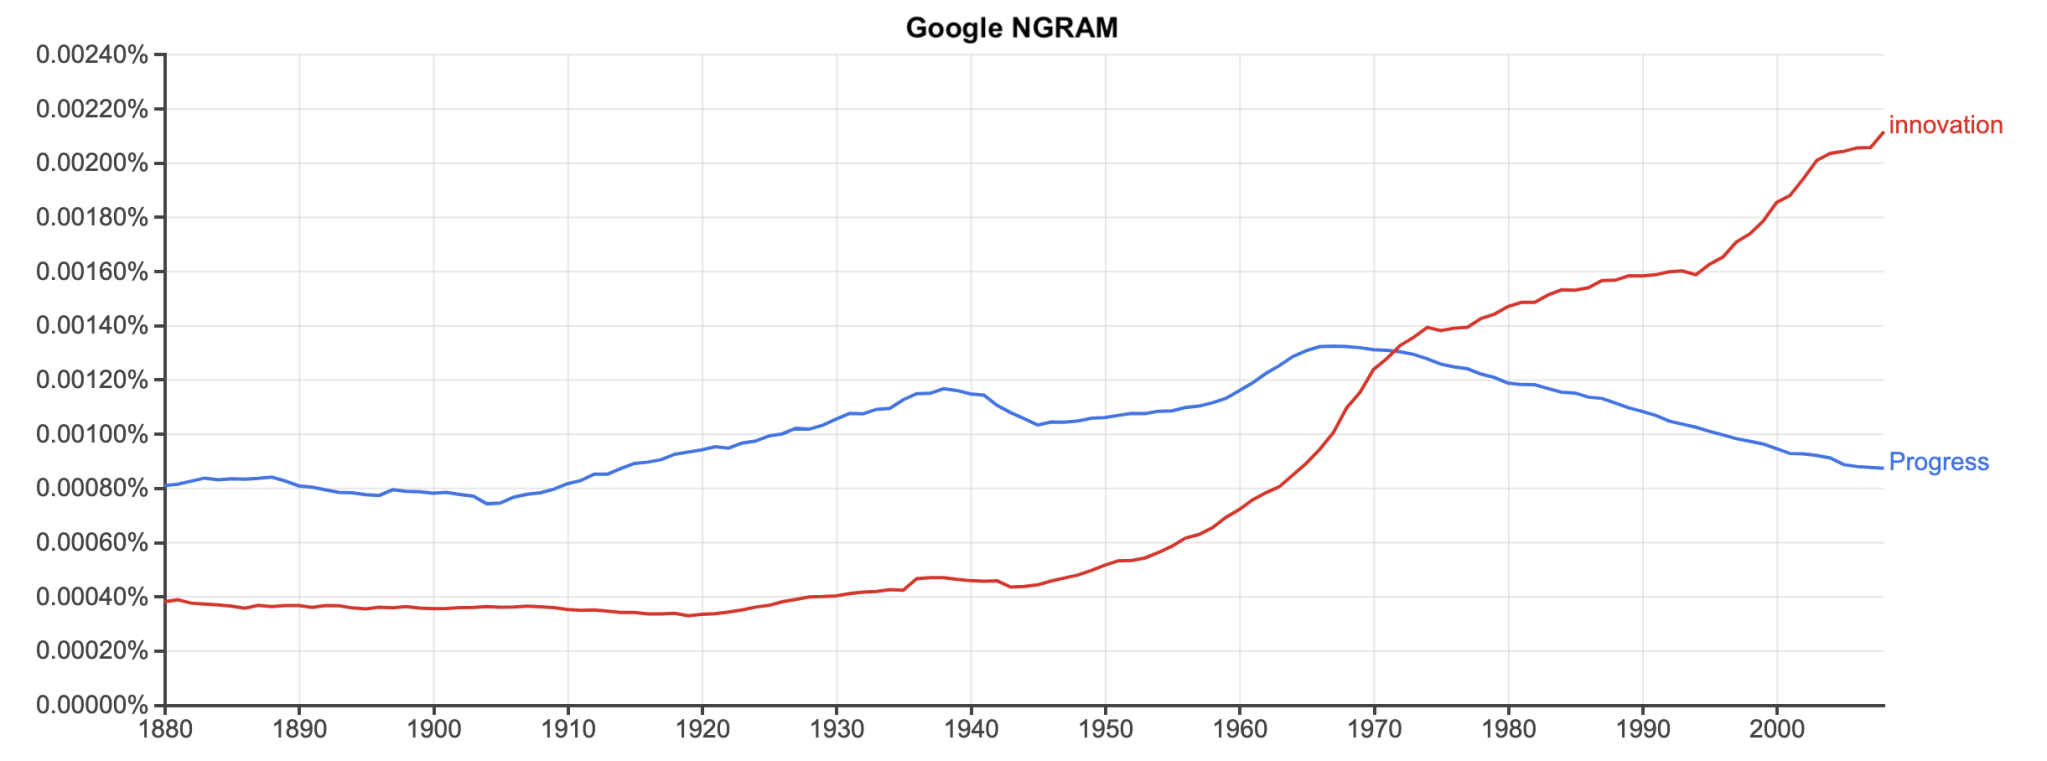 ngram innovation progress